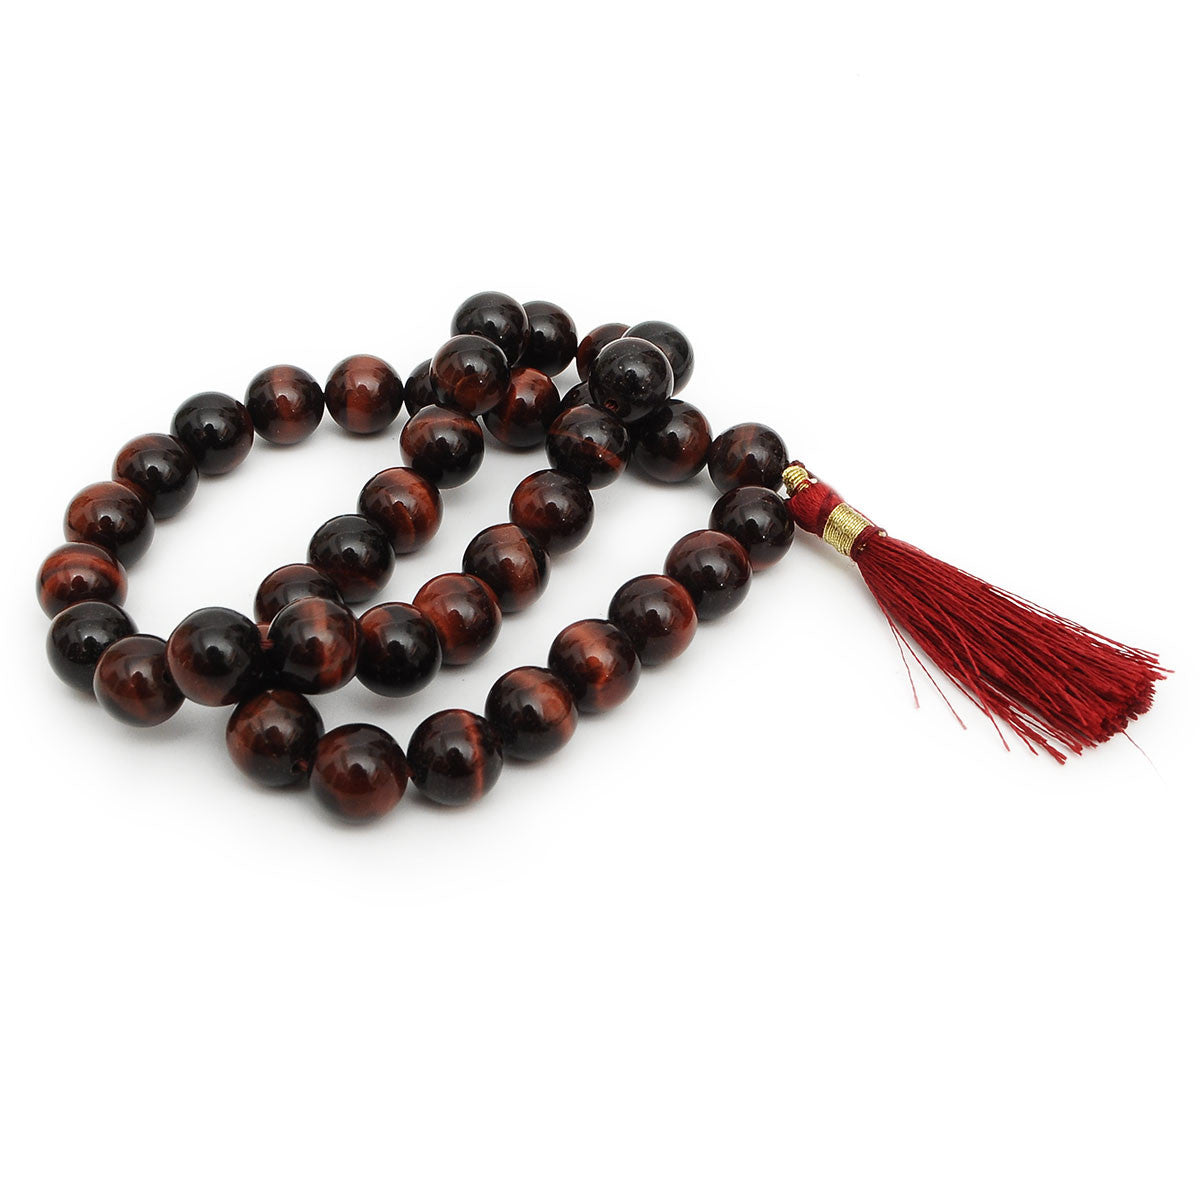 Mala Beads 10mm Natural Gemstones Round Beads Necklace 16' inches Long Crystals